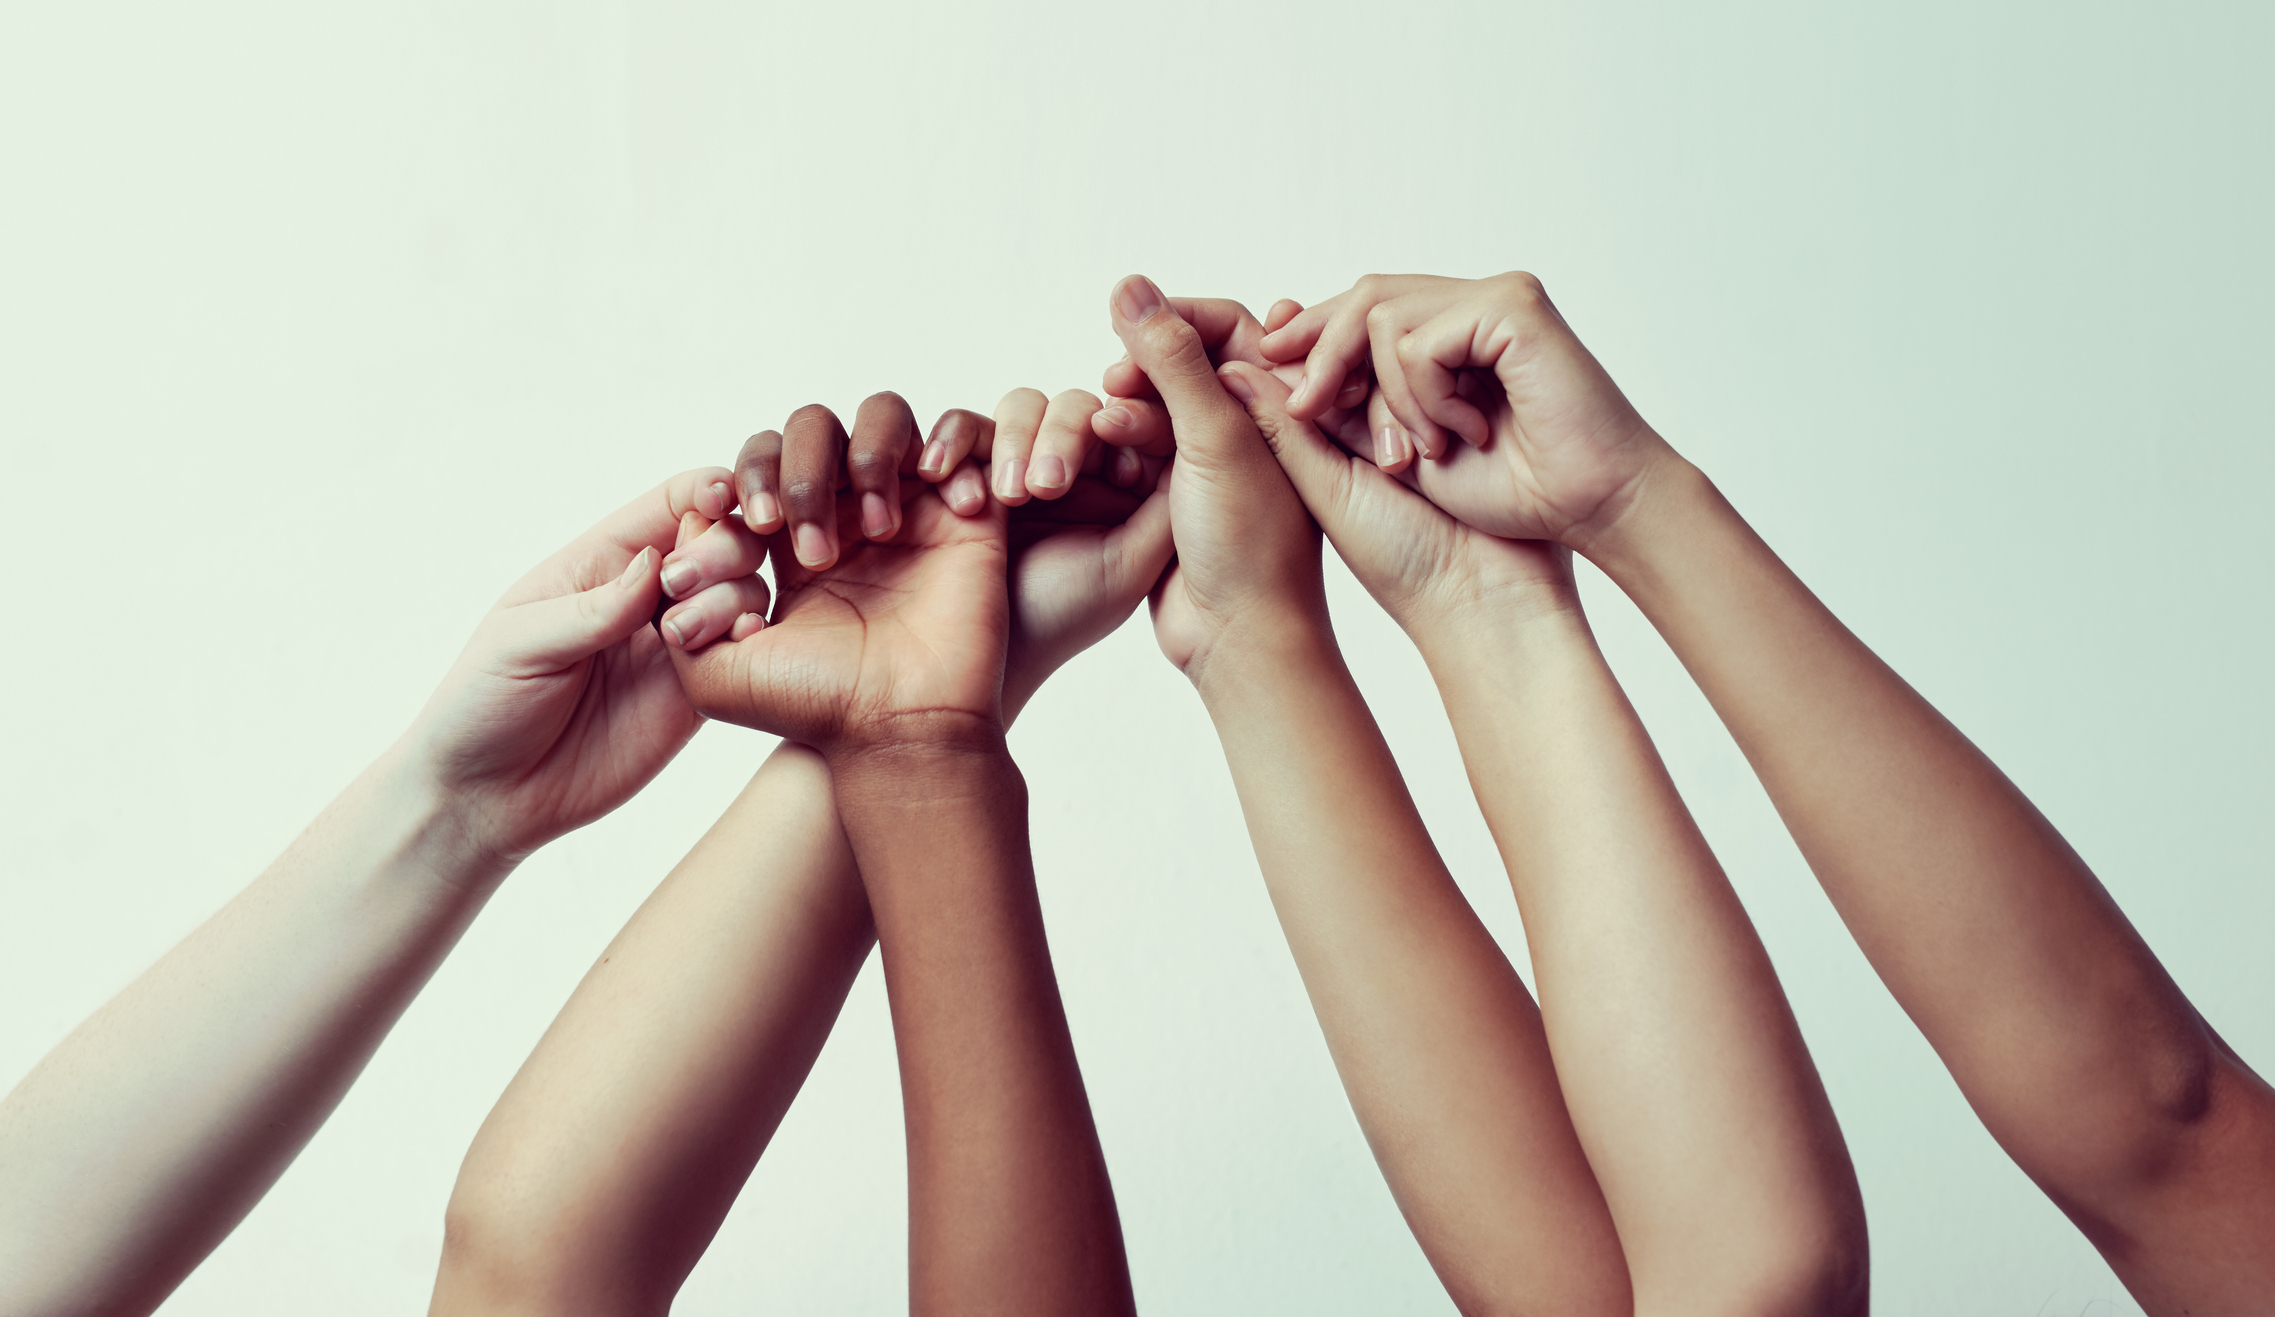 Image of women of different ethnicities holding their raised hands together